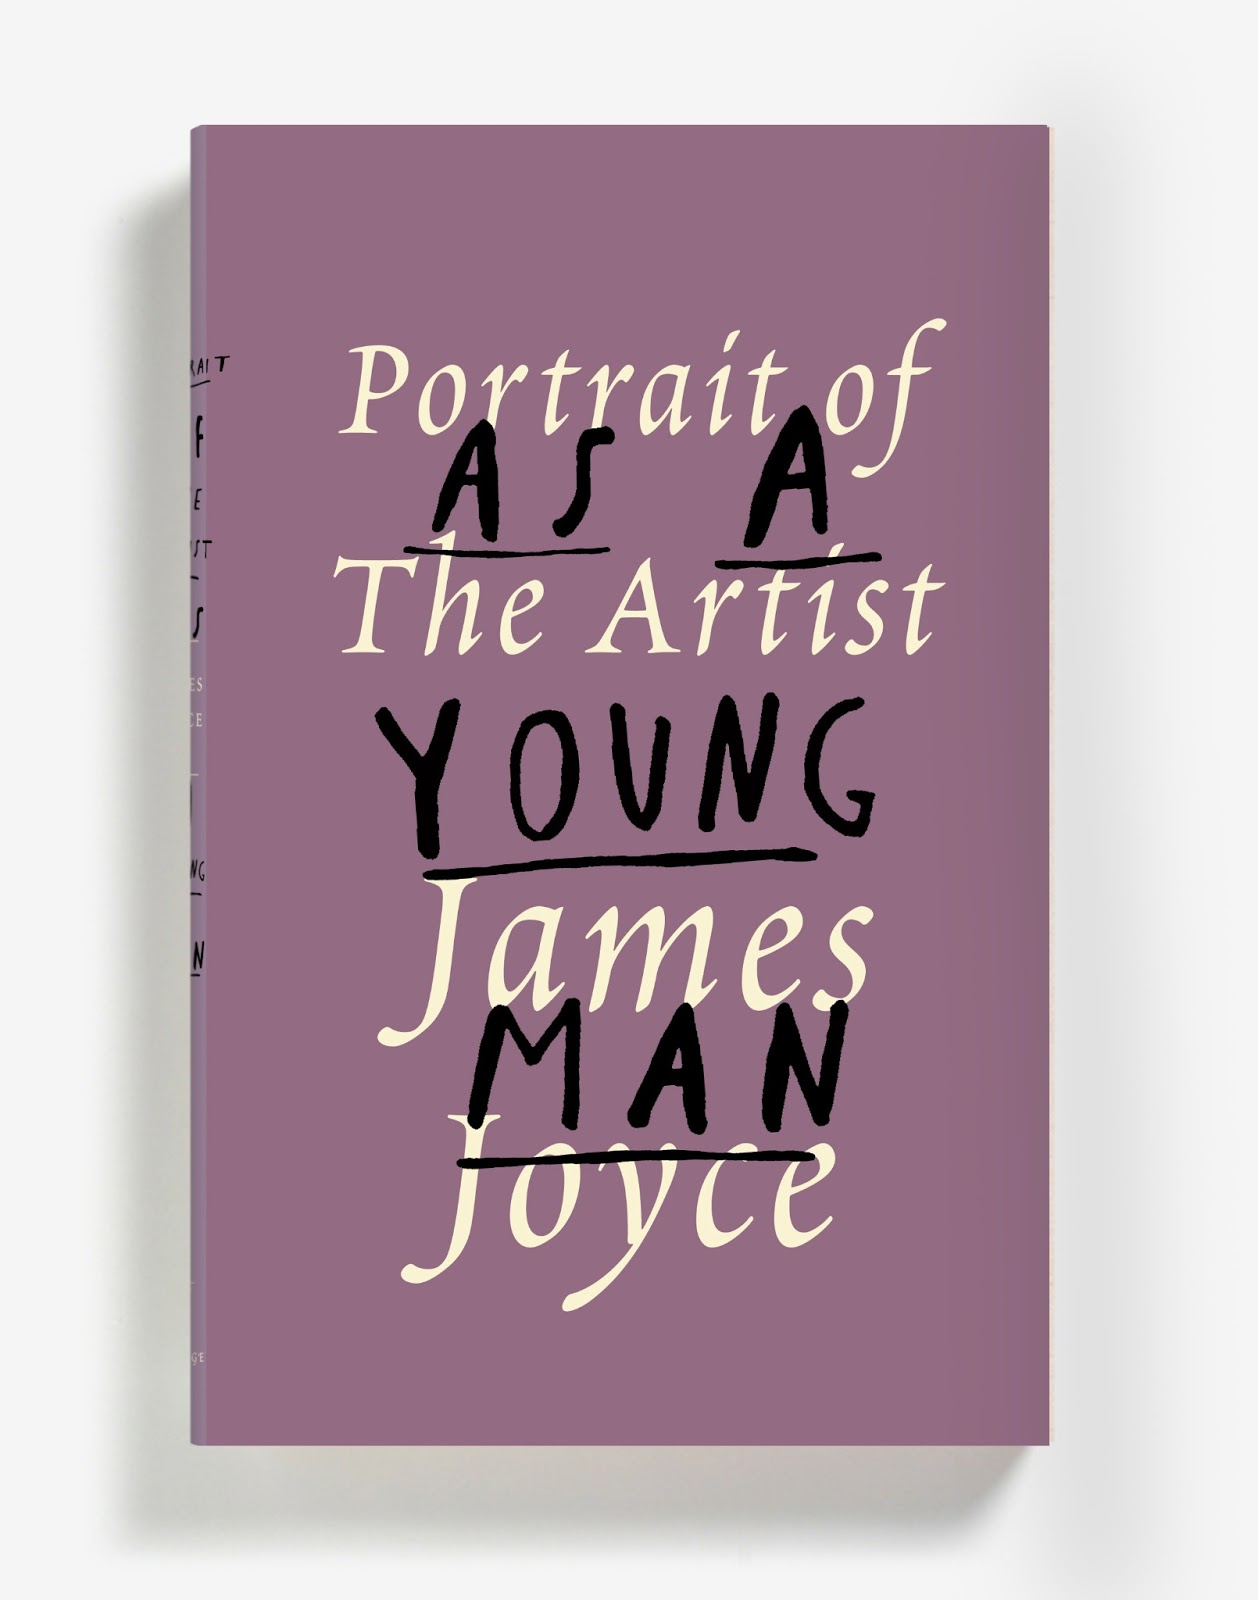 James Joyce books